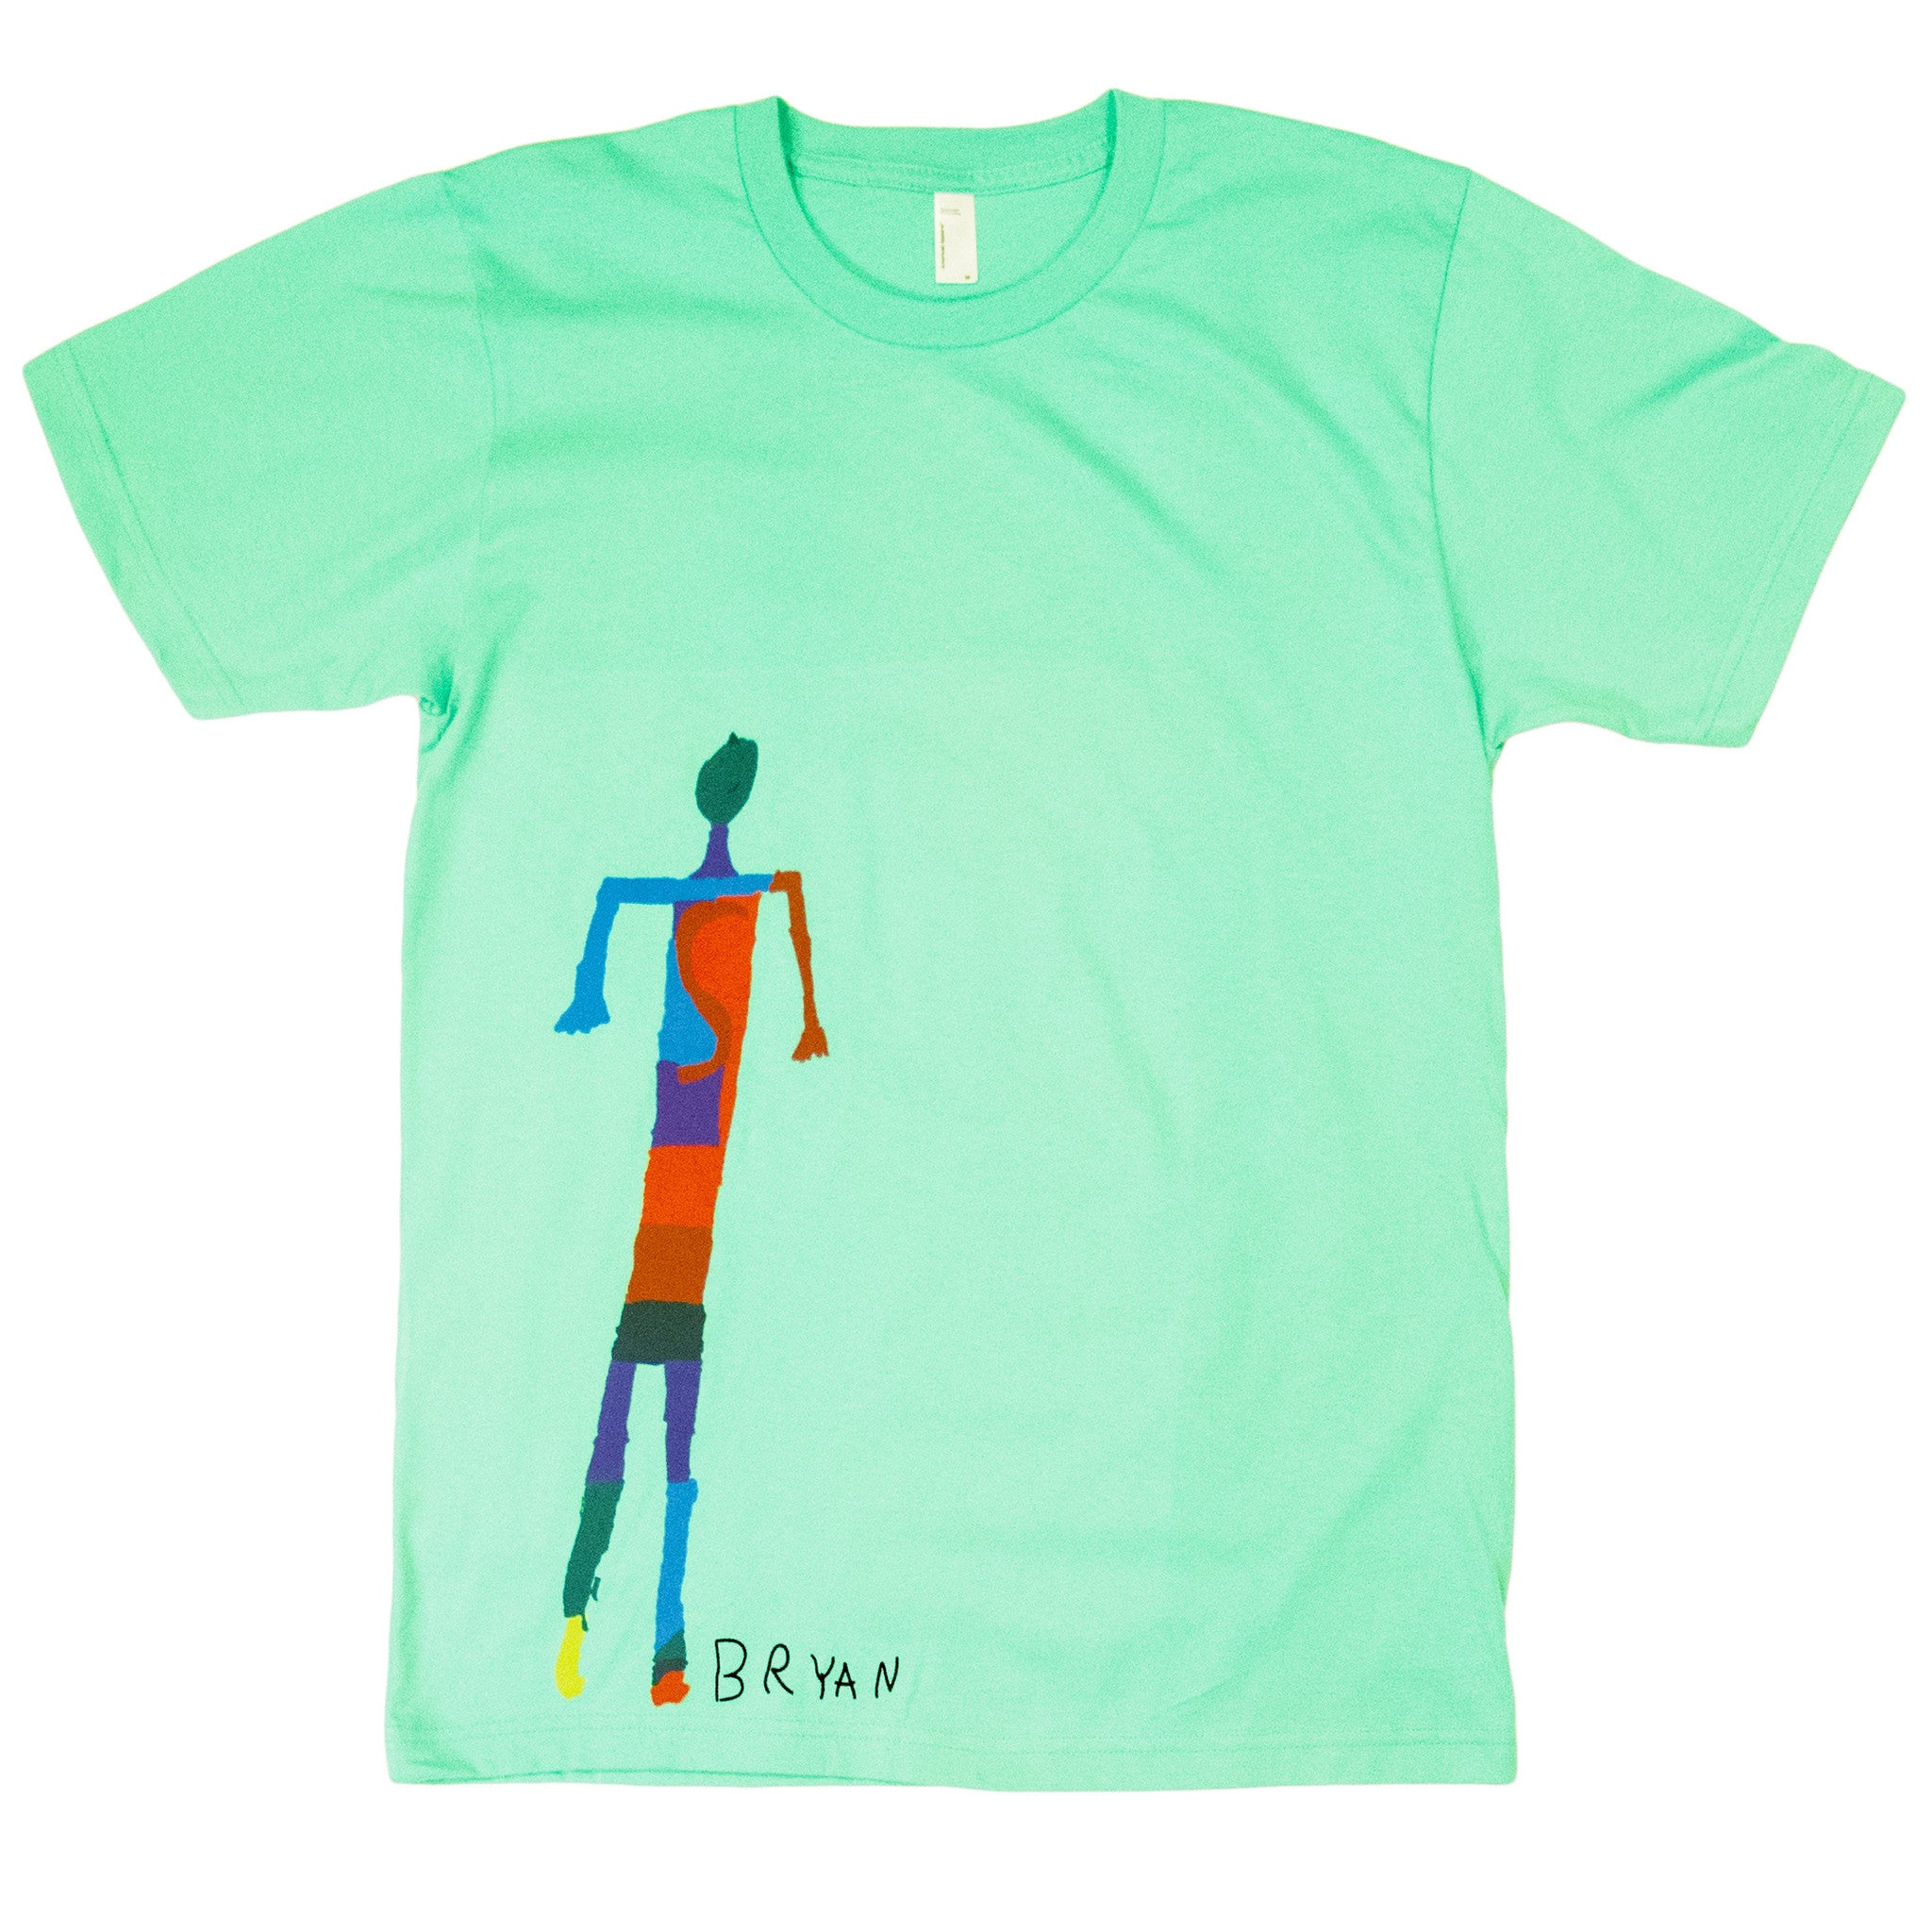 Bryan, 3rd grade - Adult T-shirt - Rightside Shirts - 1